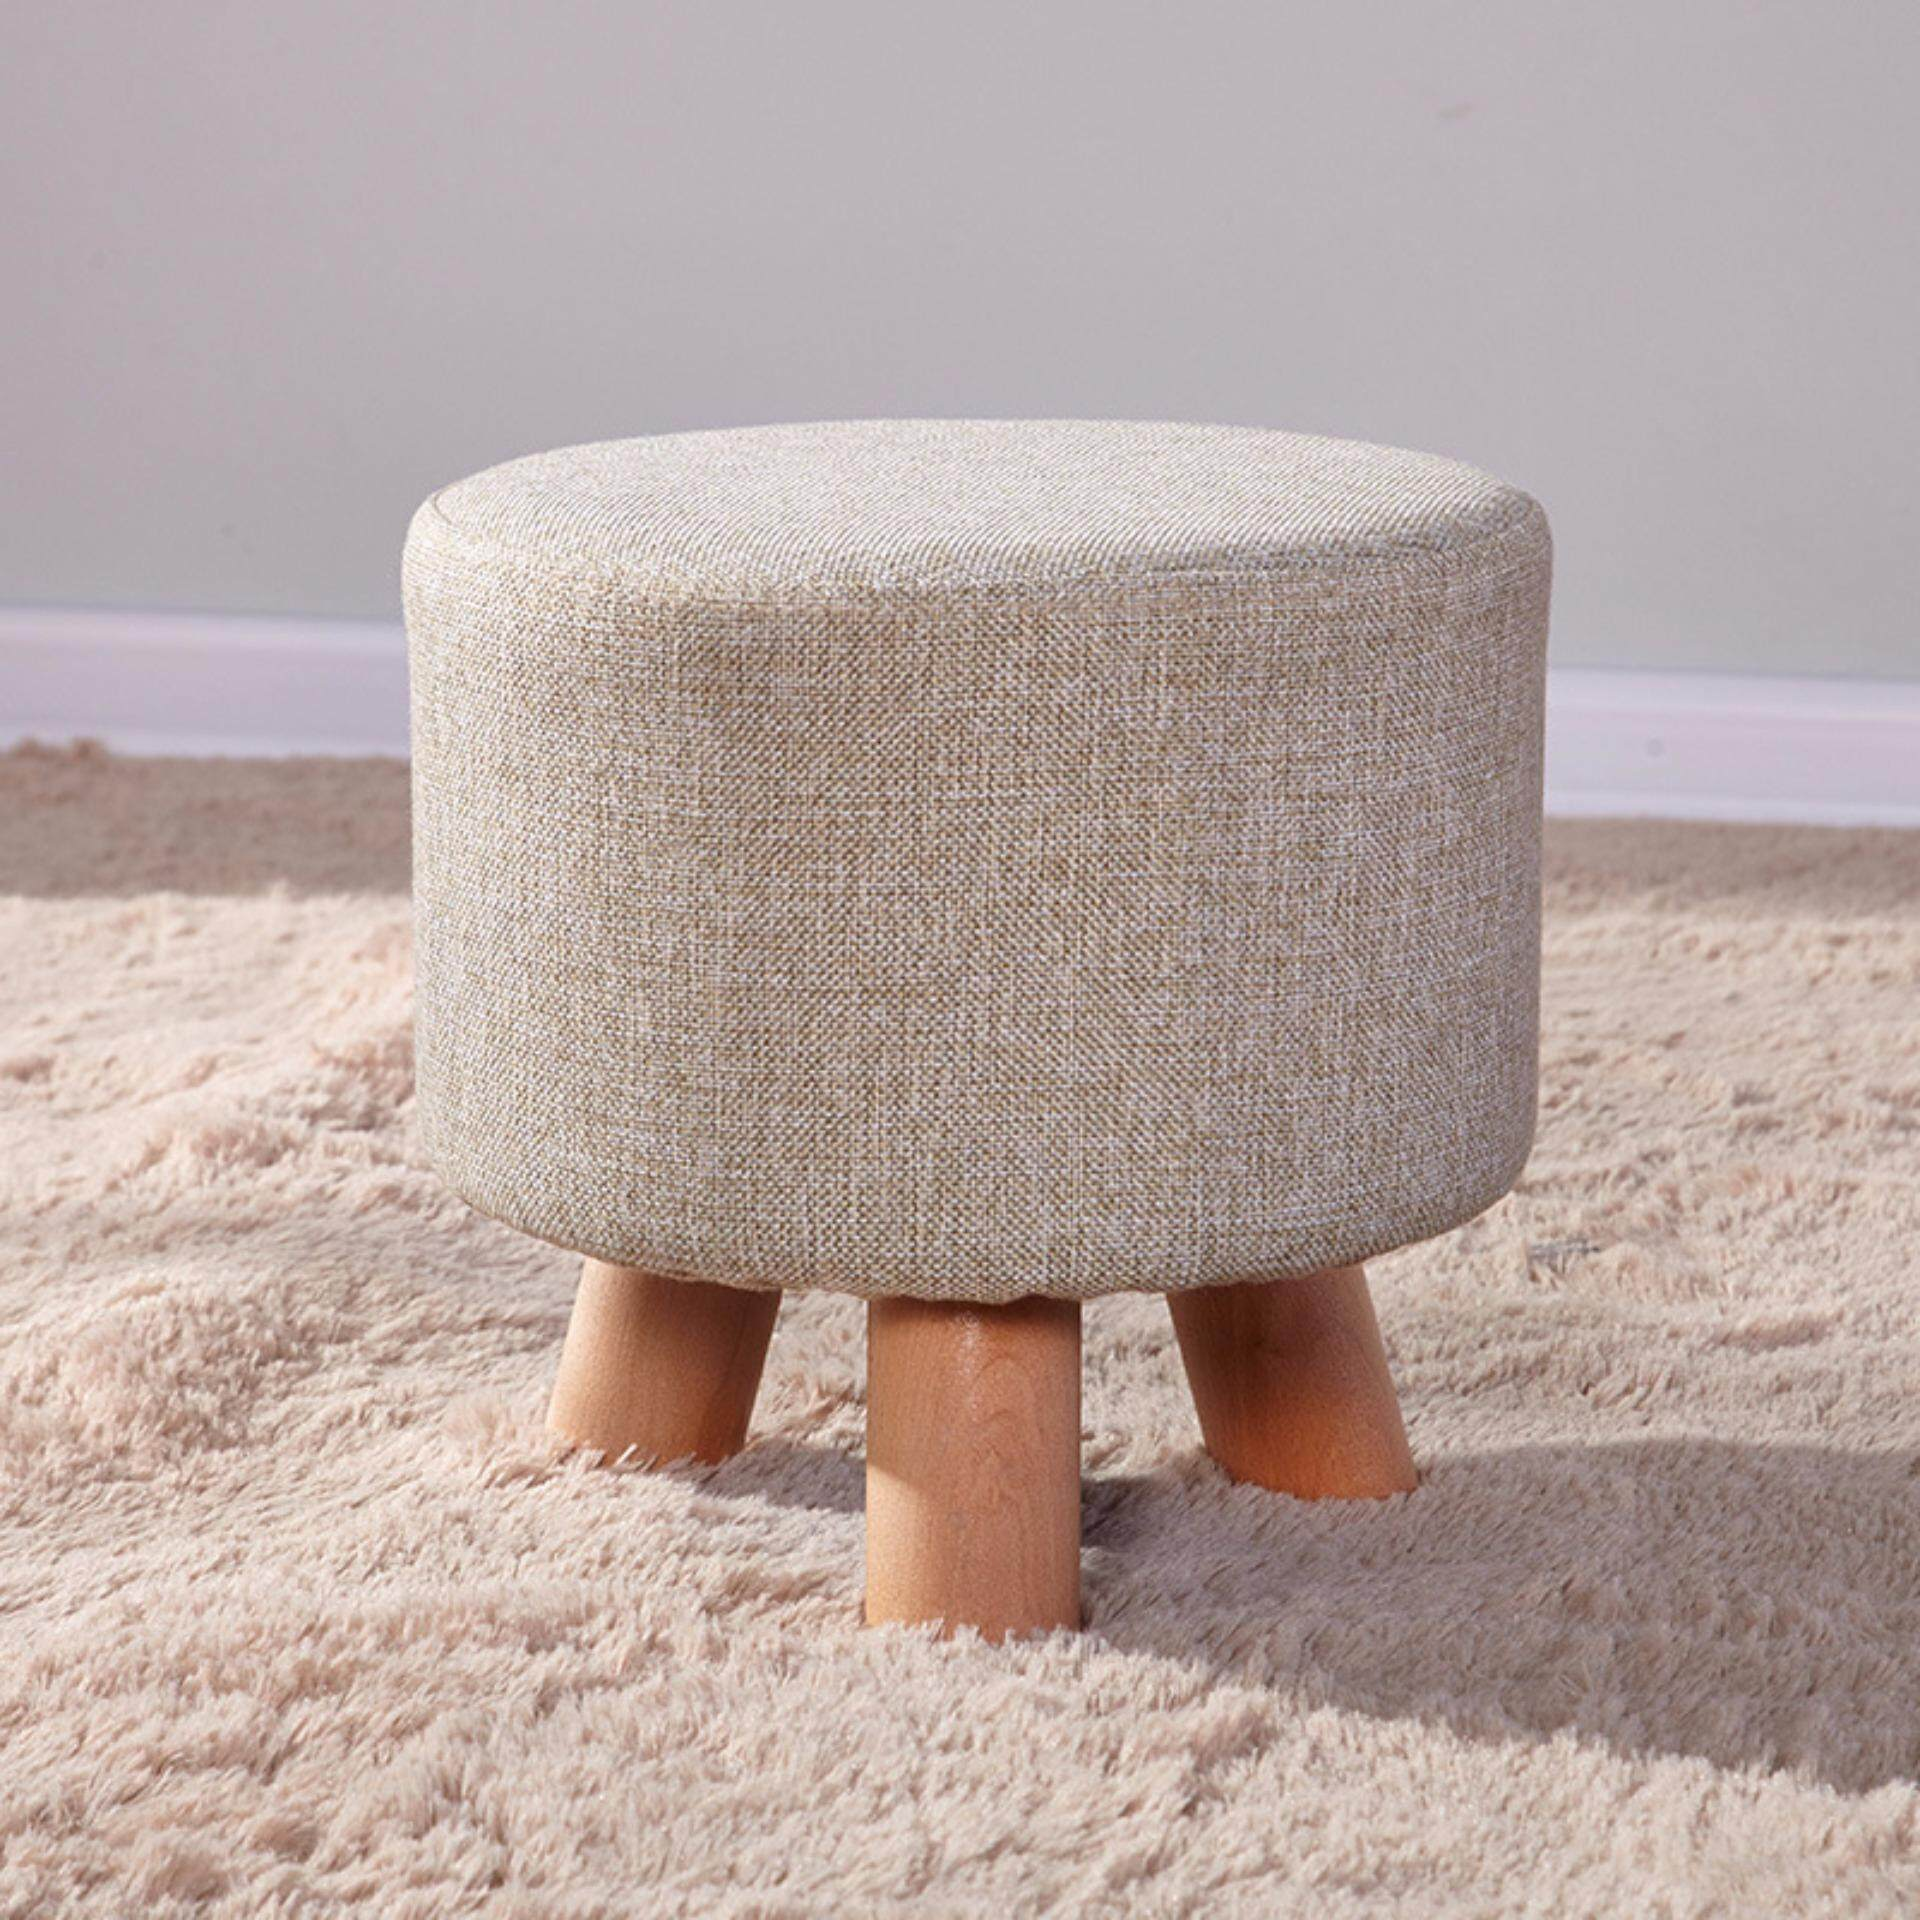 Solid wood Fashion Shoe Stool Child Sofa Short Stool 28 * 25cm - intl